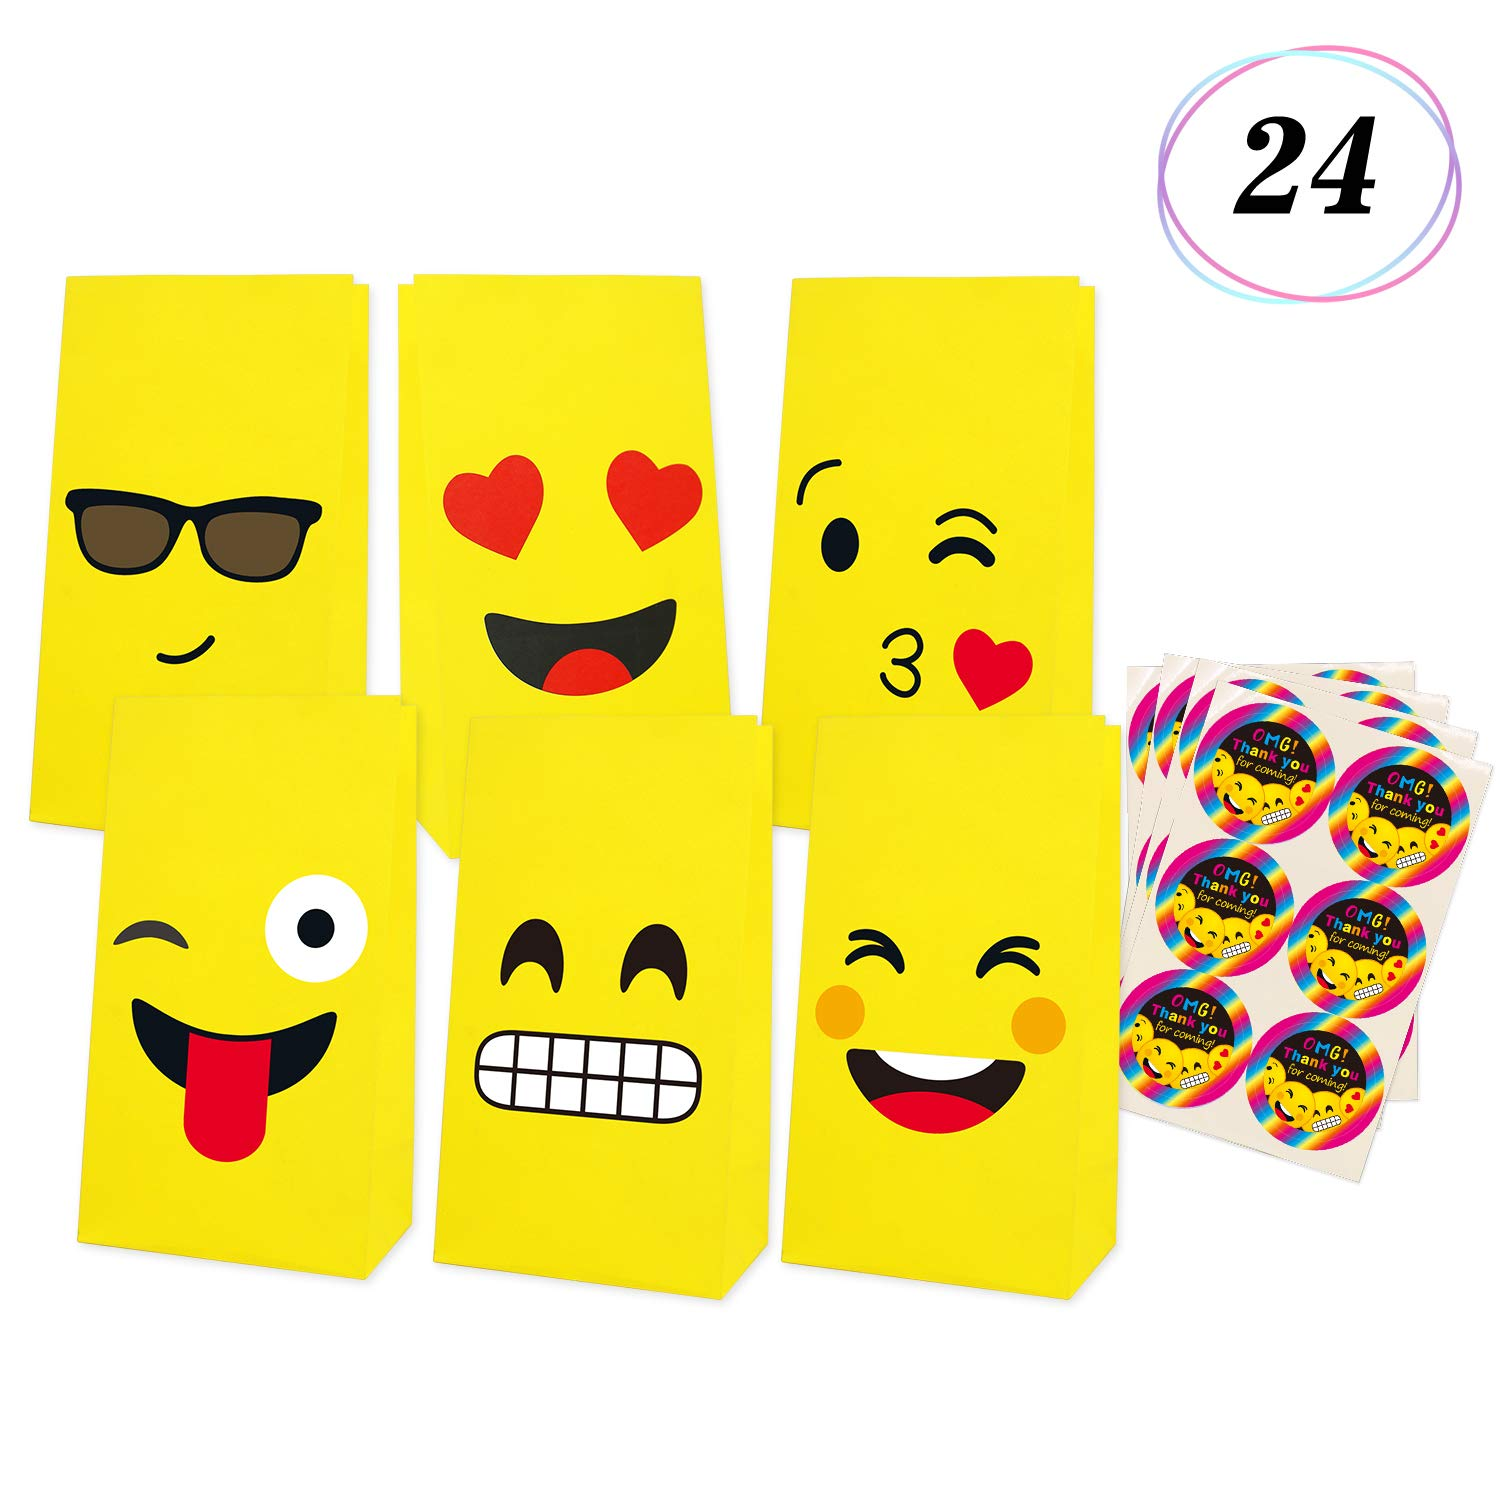 Emoji Gift Bags Birthday Party Favor Candy Goodie Emoticon Fun Classroom Treats Rewards For Kids Themed Supplies